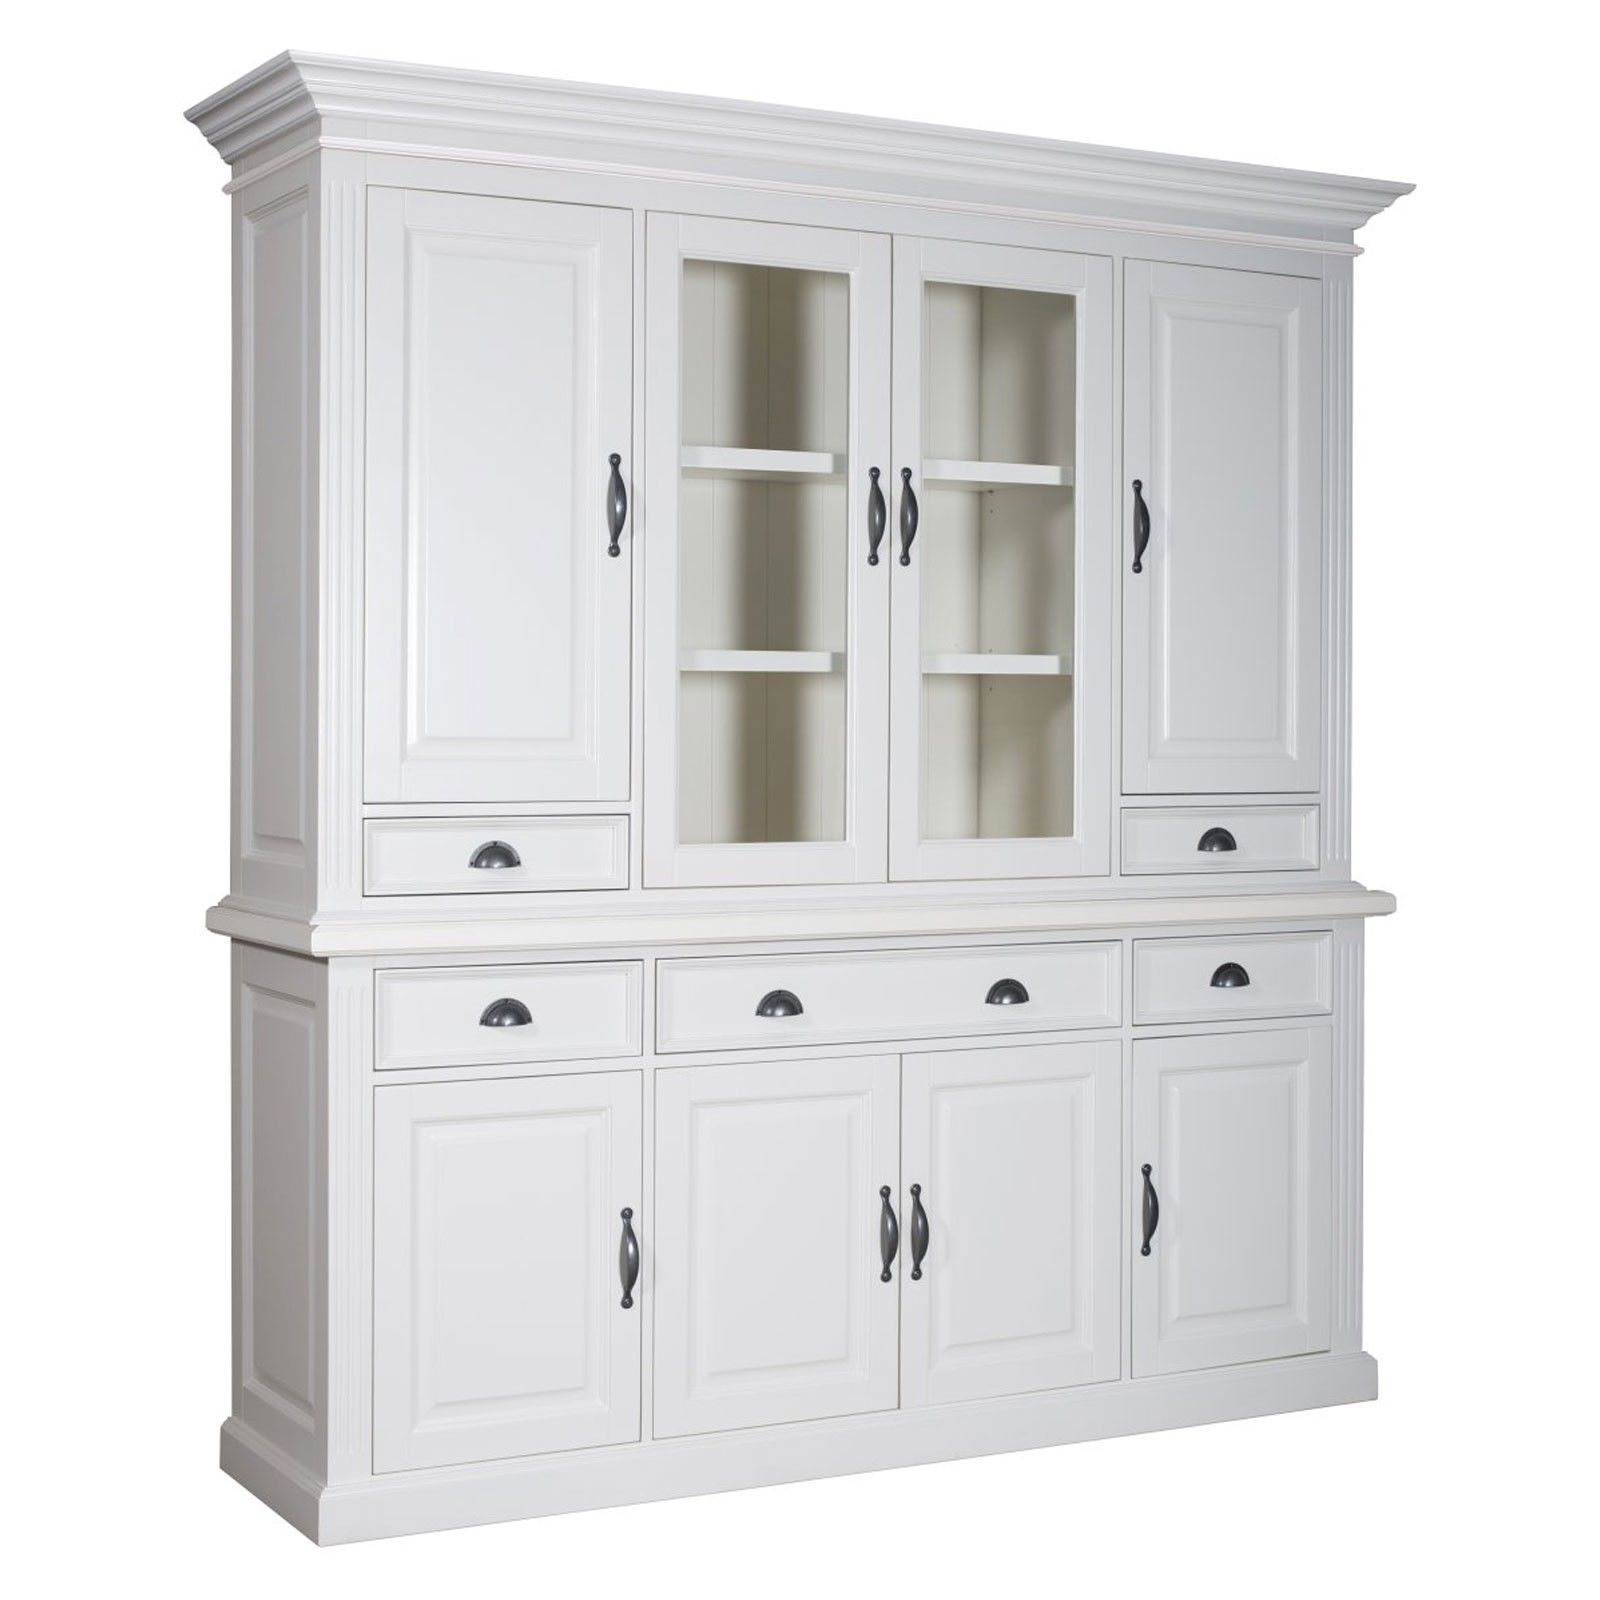 Cabinet 2x4 portes 5 tiroirs - achat mobilier chic